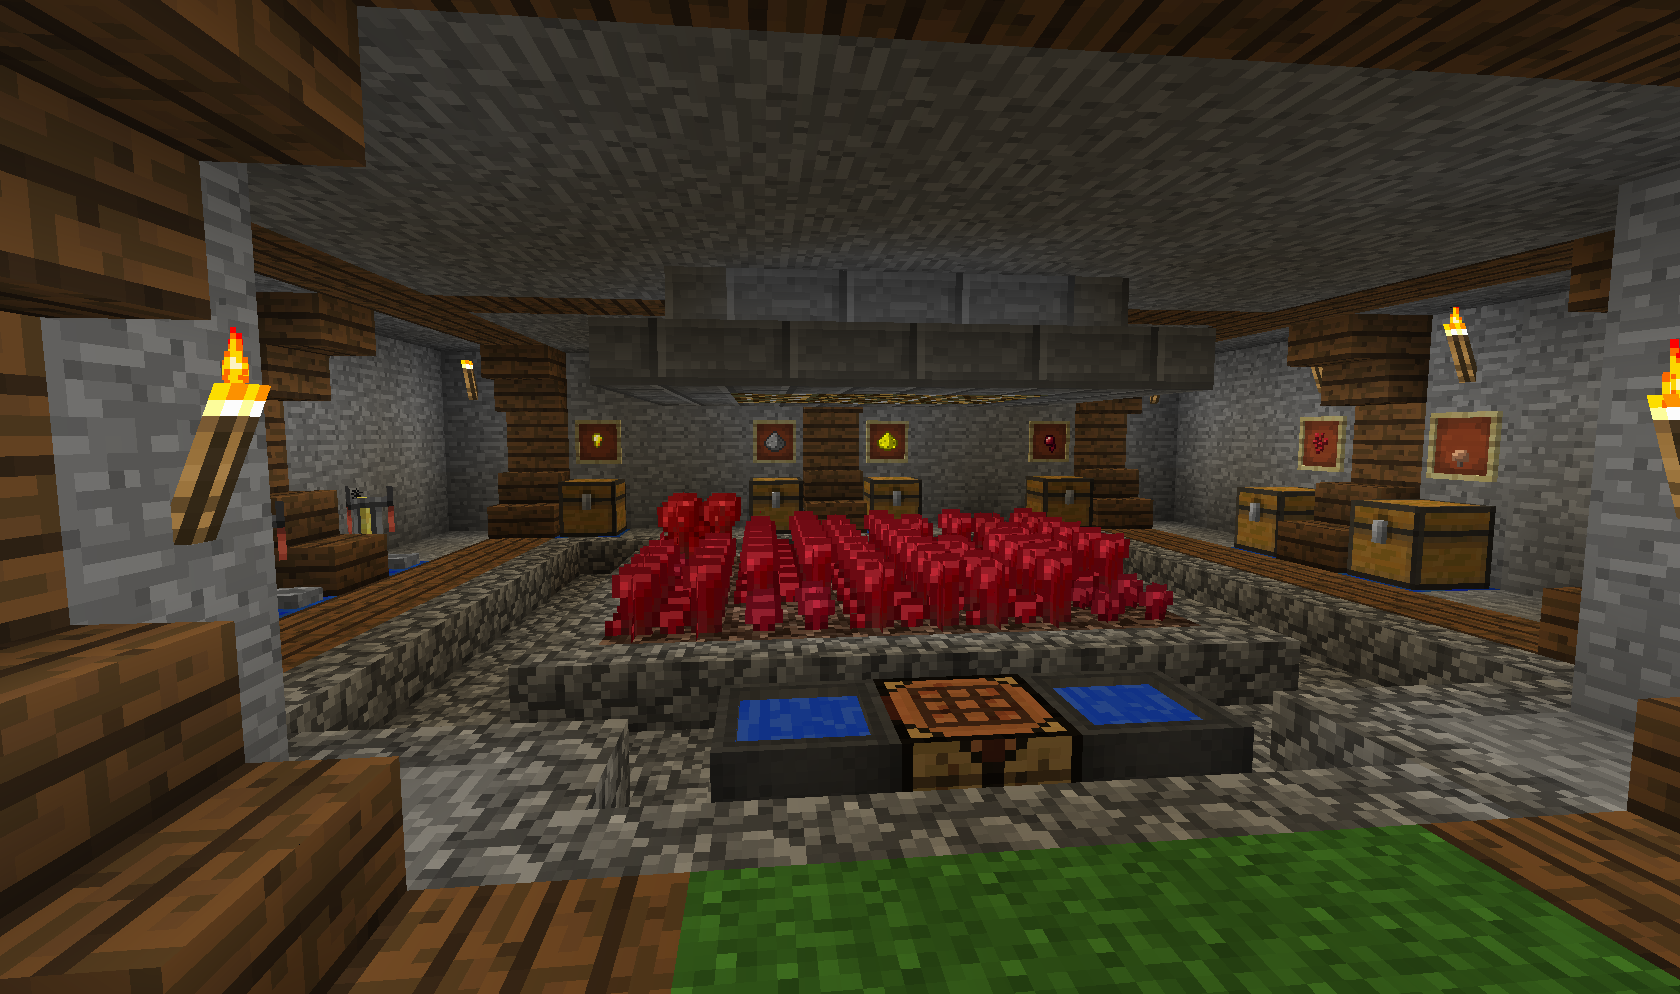 Pin By Echo Garcia On Minecraft Builds Minecraft Minecraft Houses Minecraft Creations